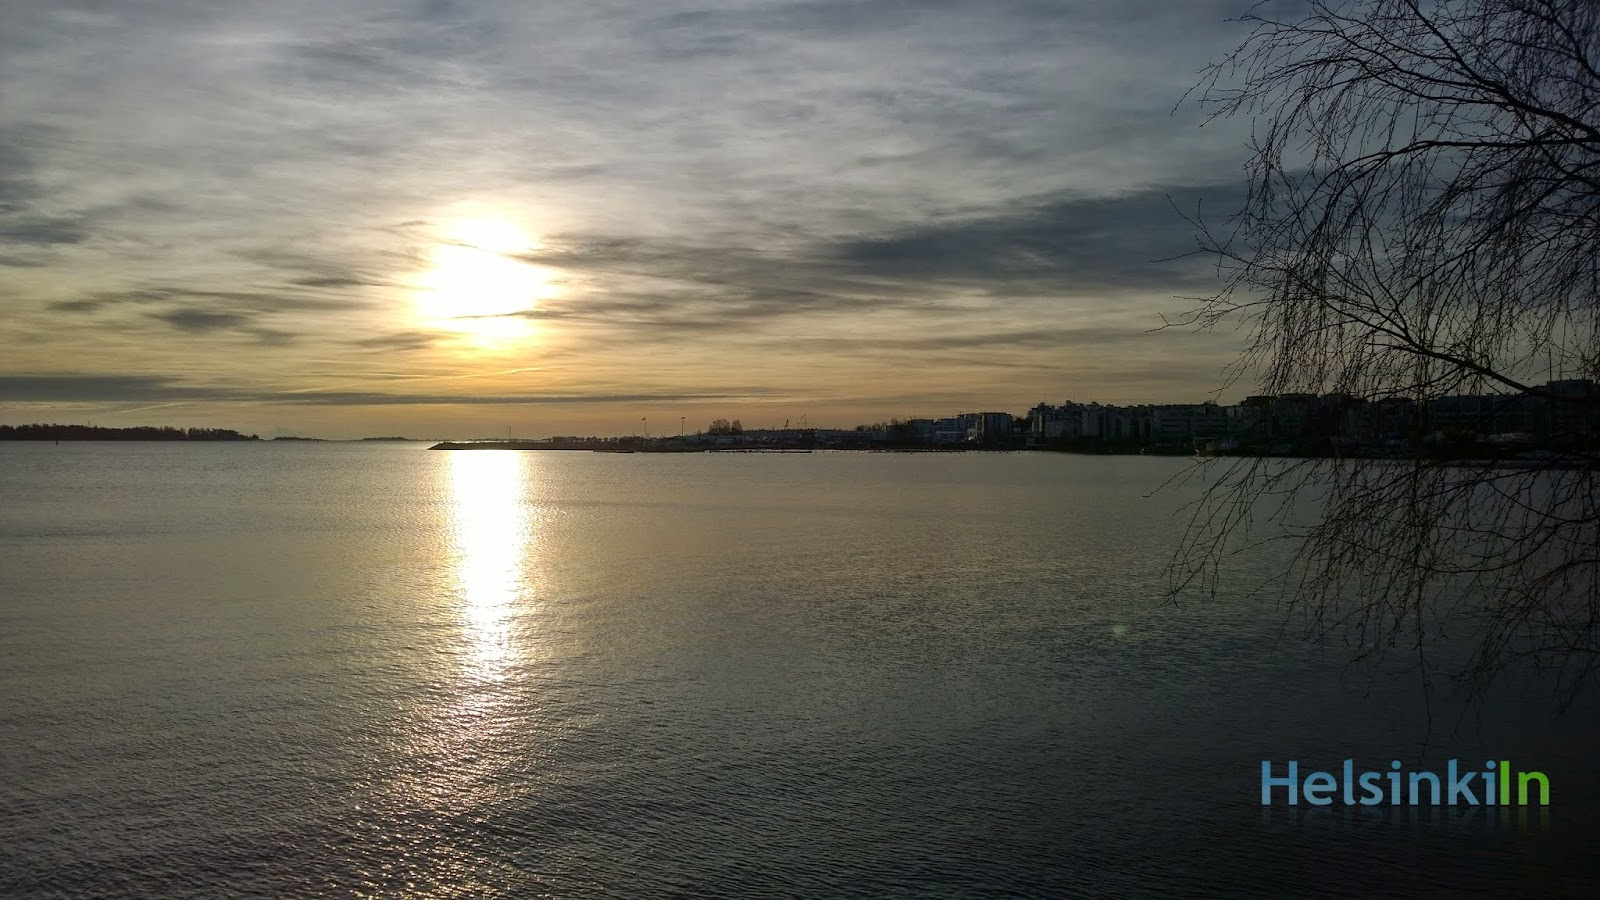 Sun over the still unfrozen Baltic Sea